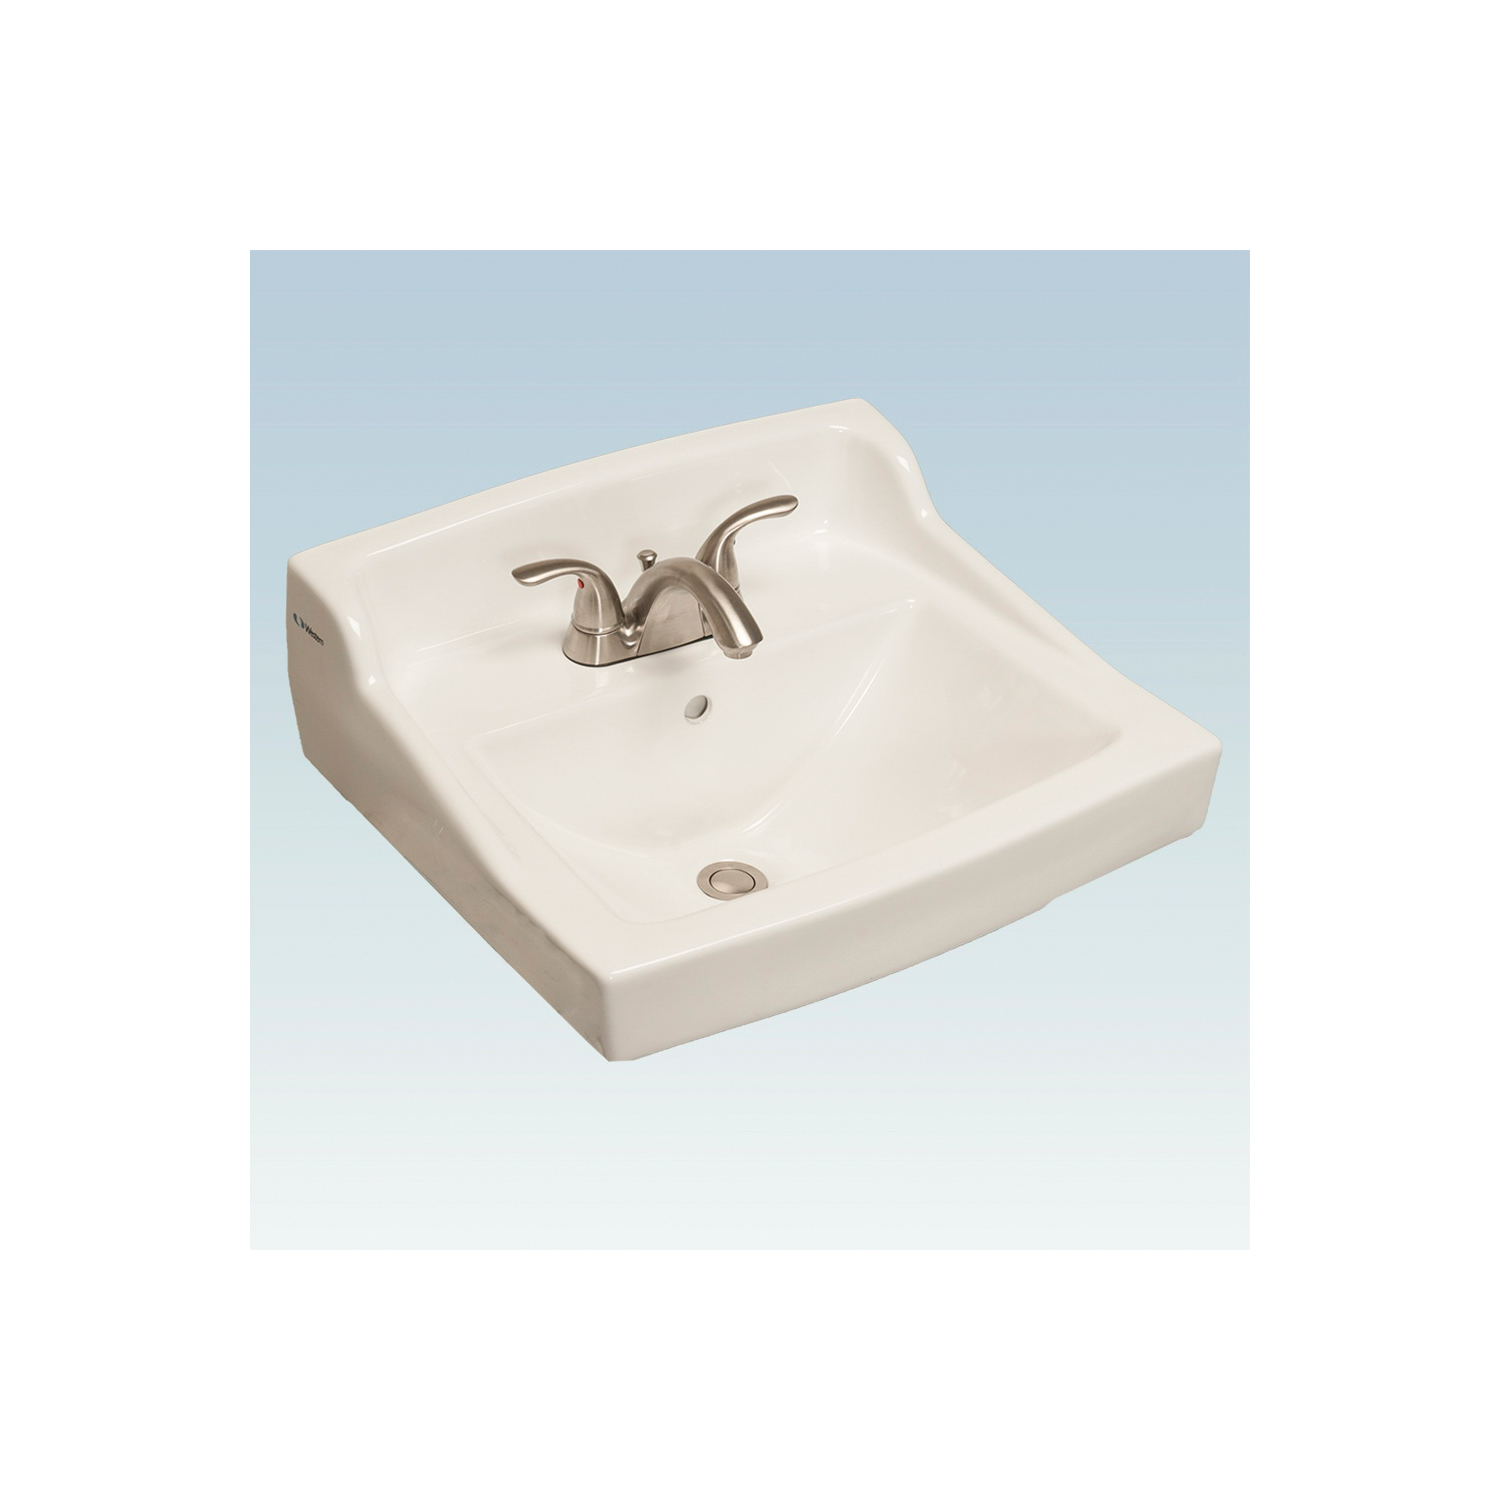 Western Pottery L400 Lavatory Sink, Rectangular, 4 in Faucet Hole Spacing, 20-1/2 in W x 18-3/4 in D x 34 in H, Wall-Hung Mount, Vitreous China, White